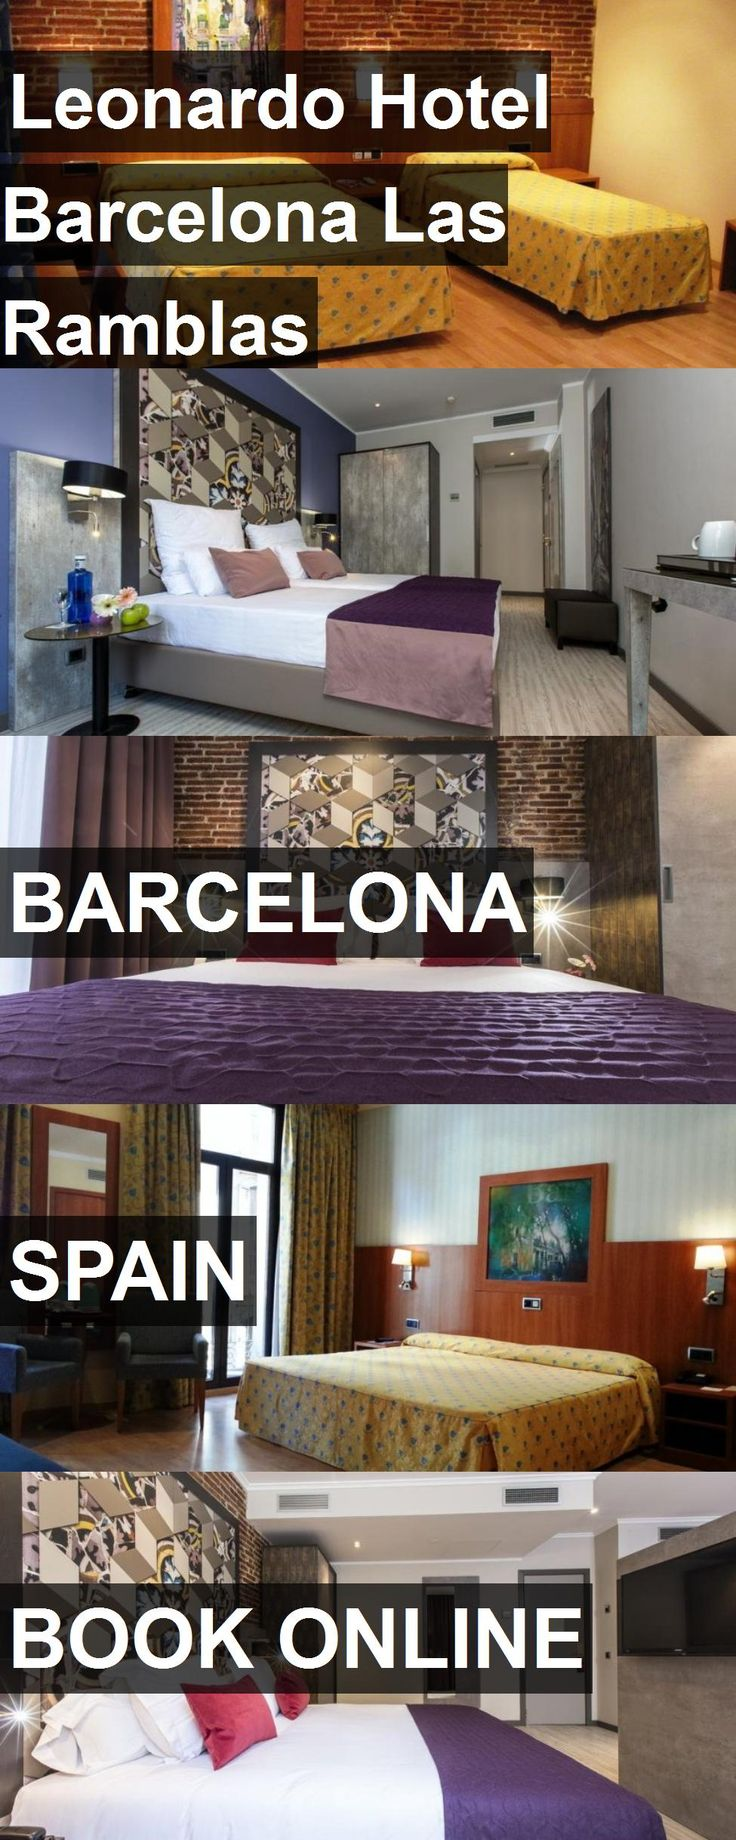 Hotel Leonardo Hotel Barcelona Las Ramblas in Barcelona, Spain. For more information, photos, reviews and best prices please follow the link. #Spain #Barcelona #LeonardoHotelBarcelonaLasRamblas #hotel #travel #vacation